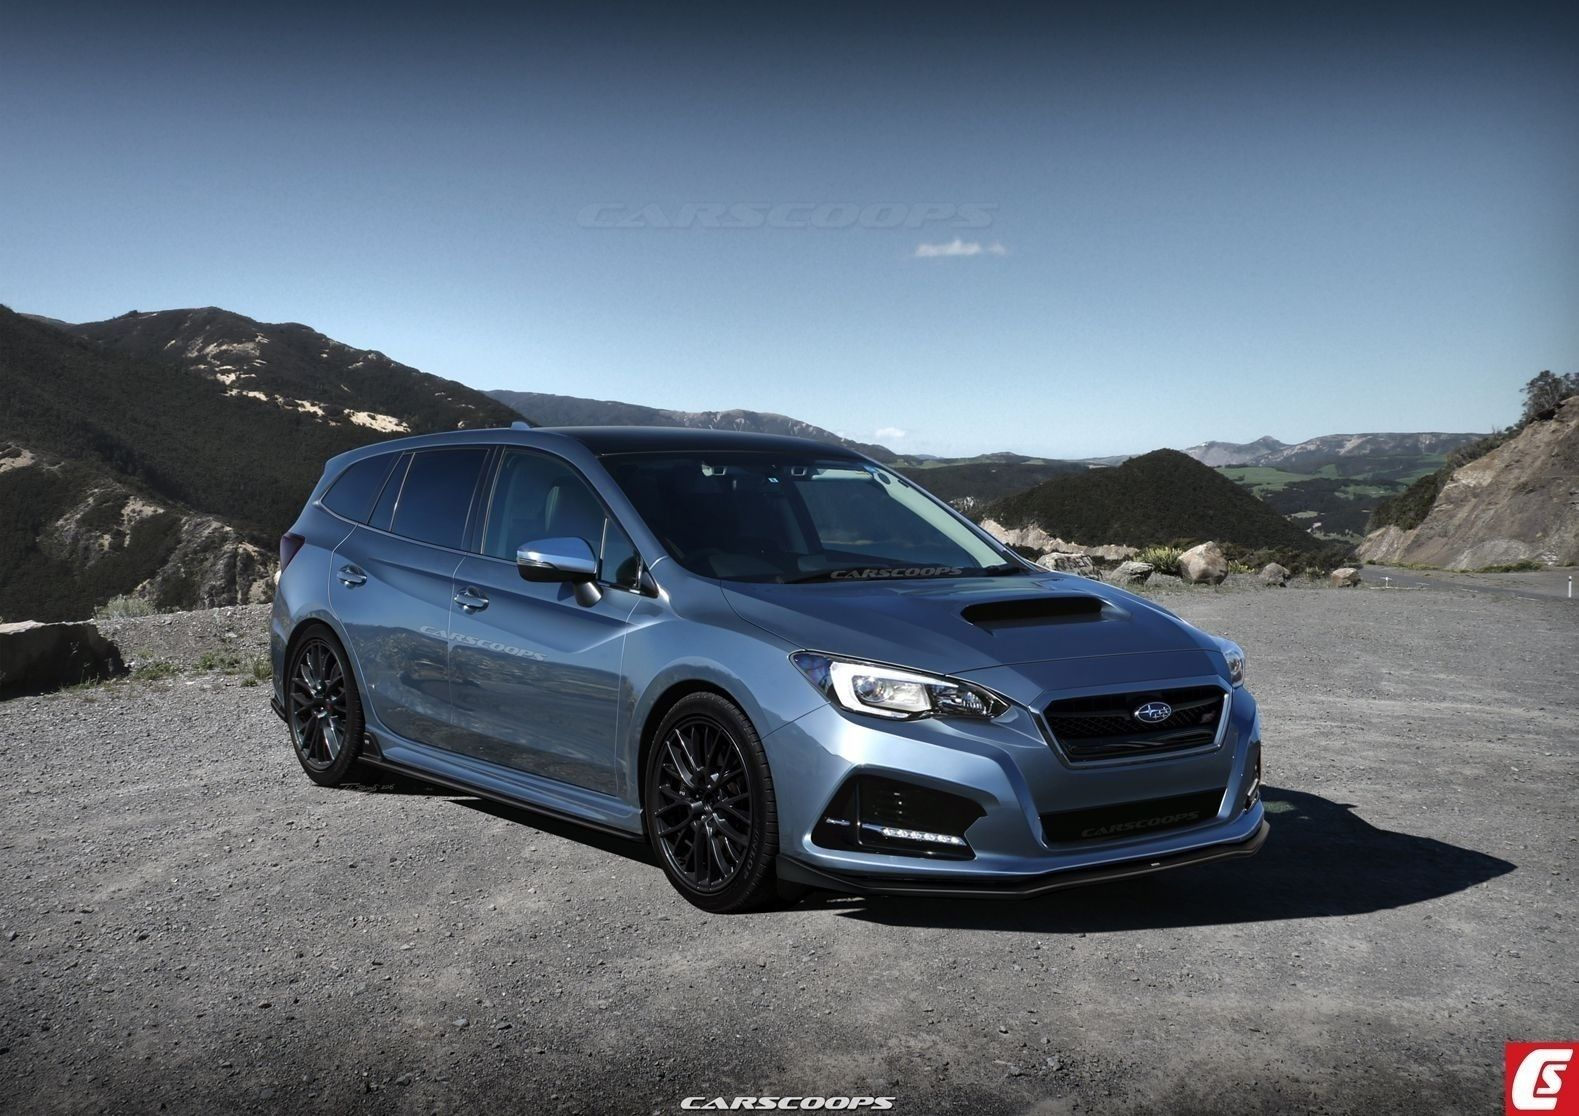 2019 Subaru WRX Hatch Release Date, Price and Review